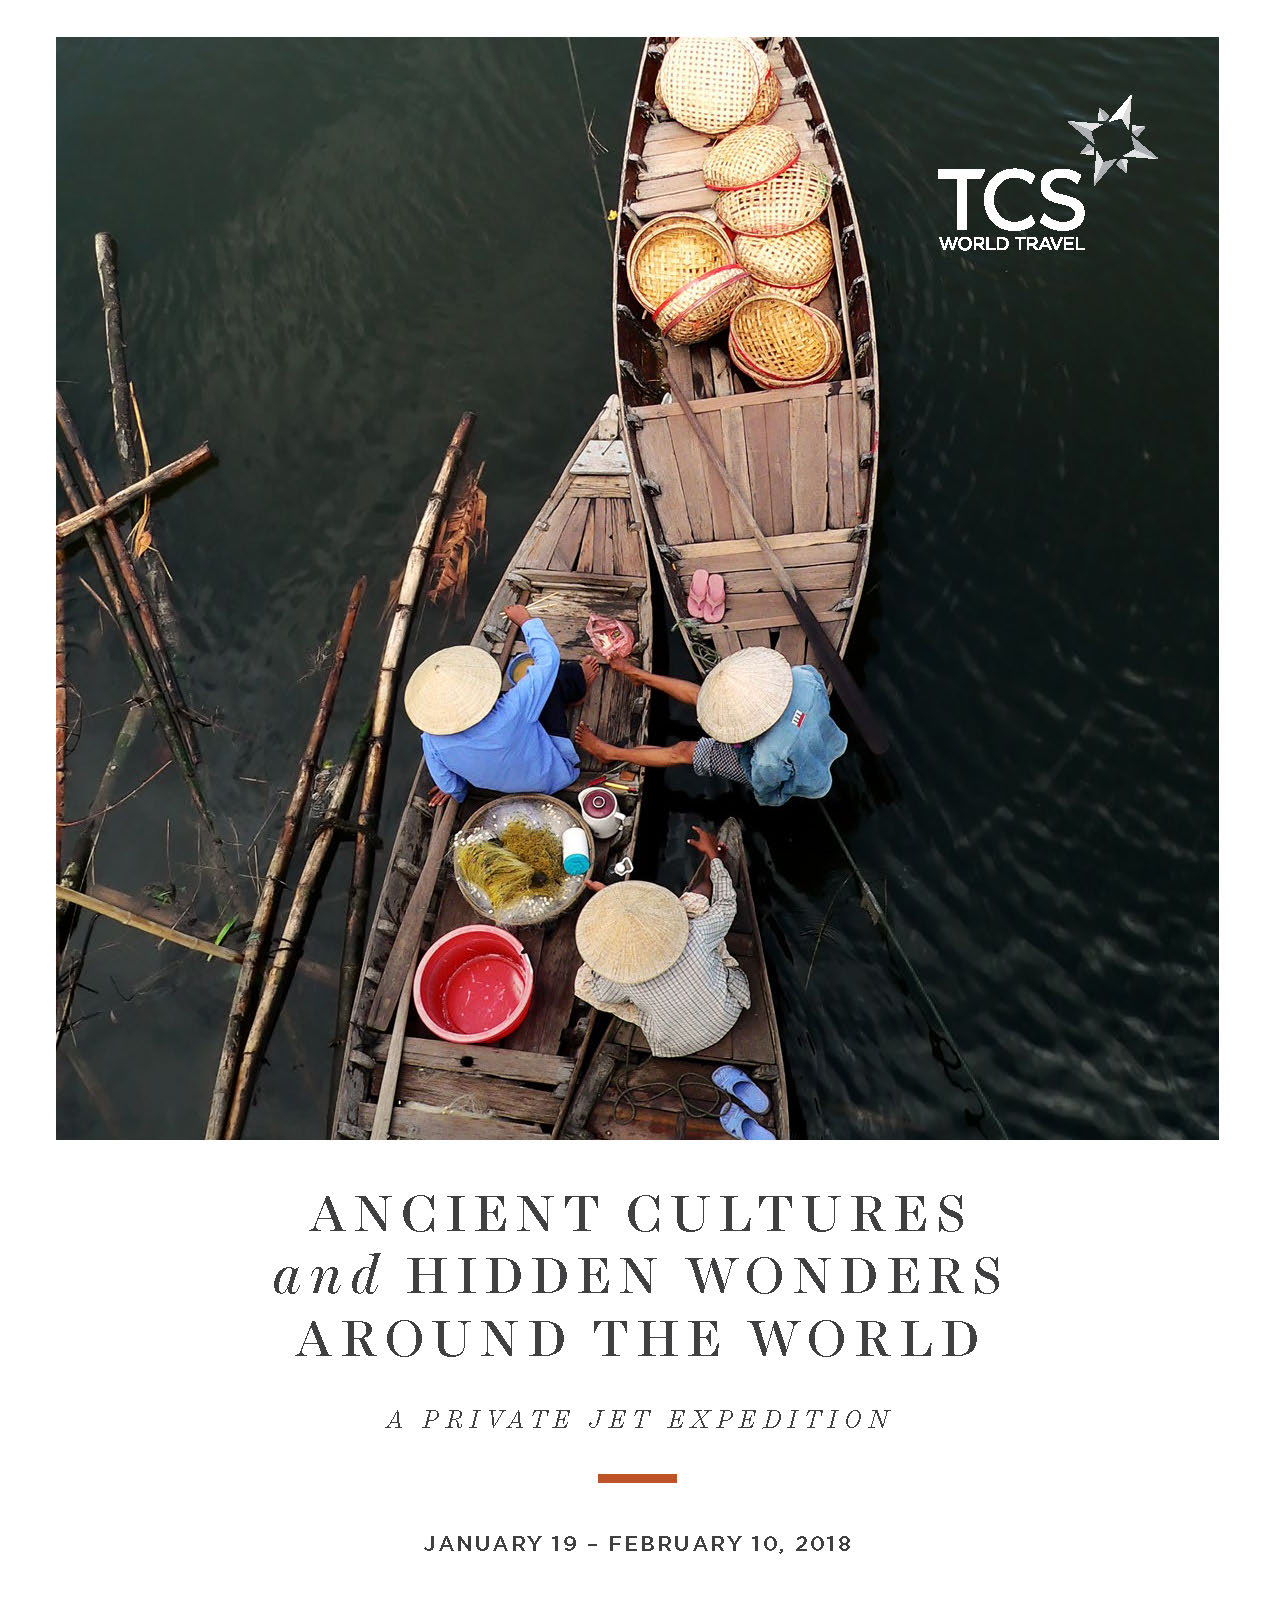 TCS: Ancient Cultures & Hidden Wonders Around the World